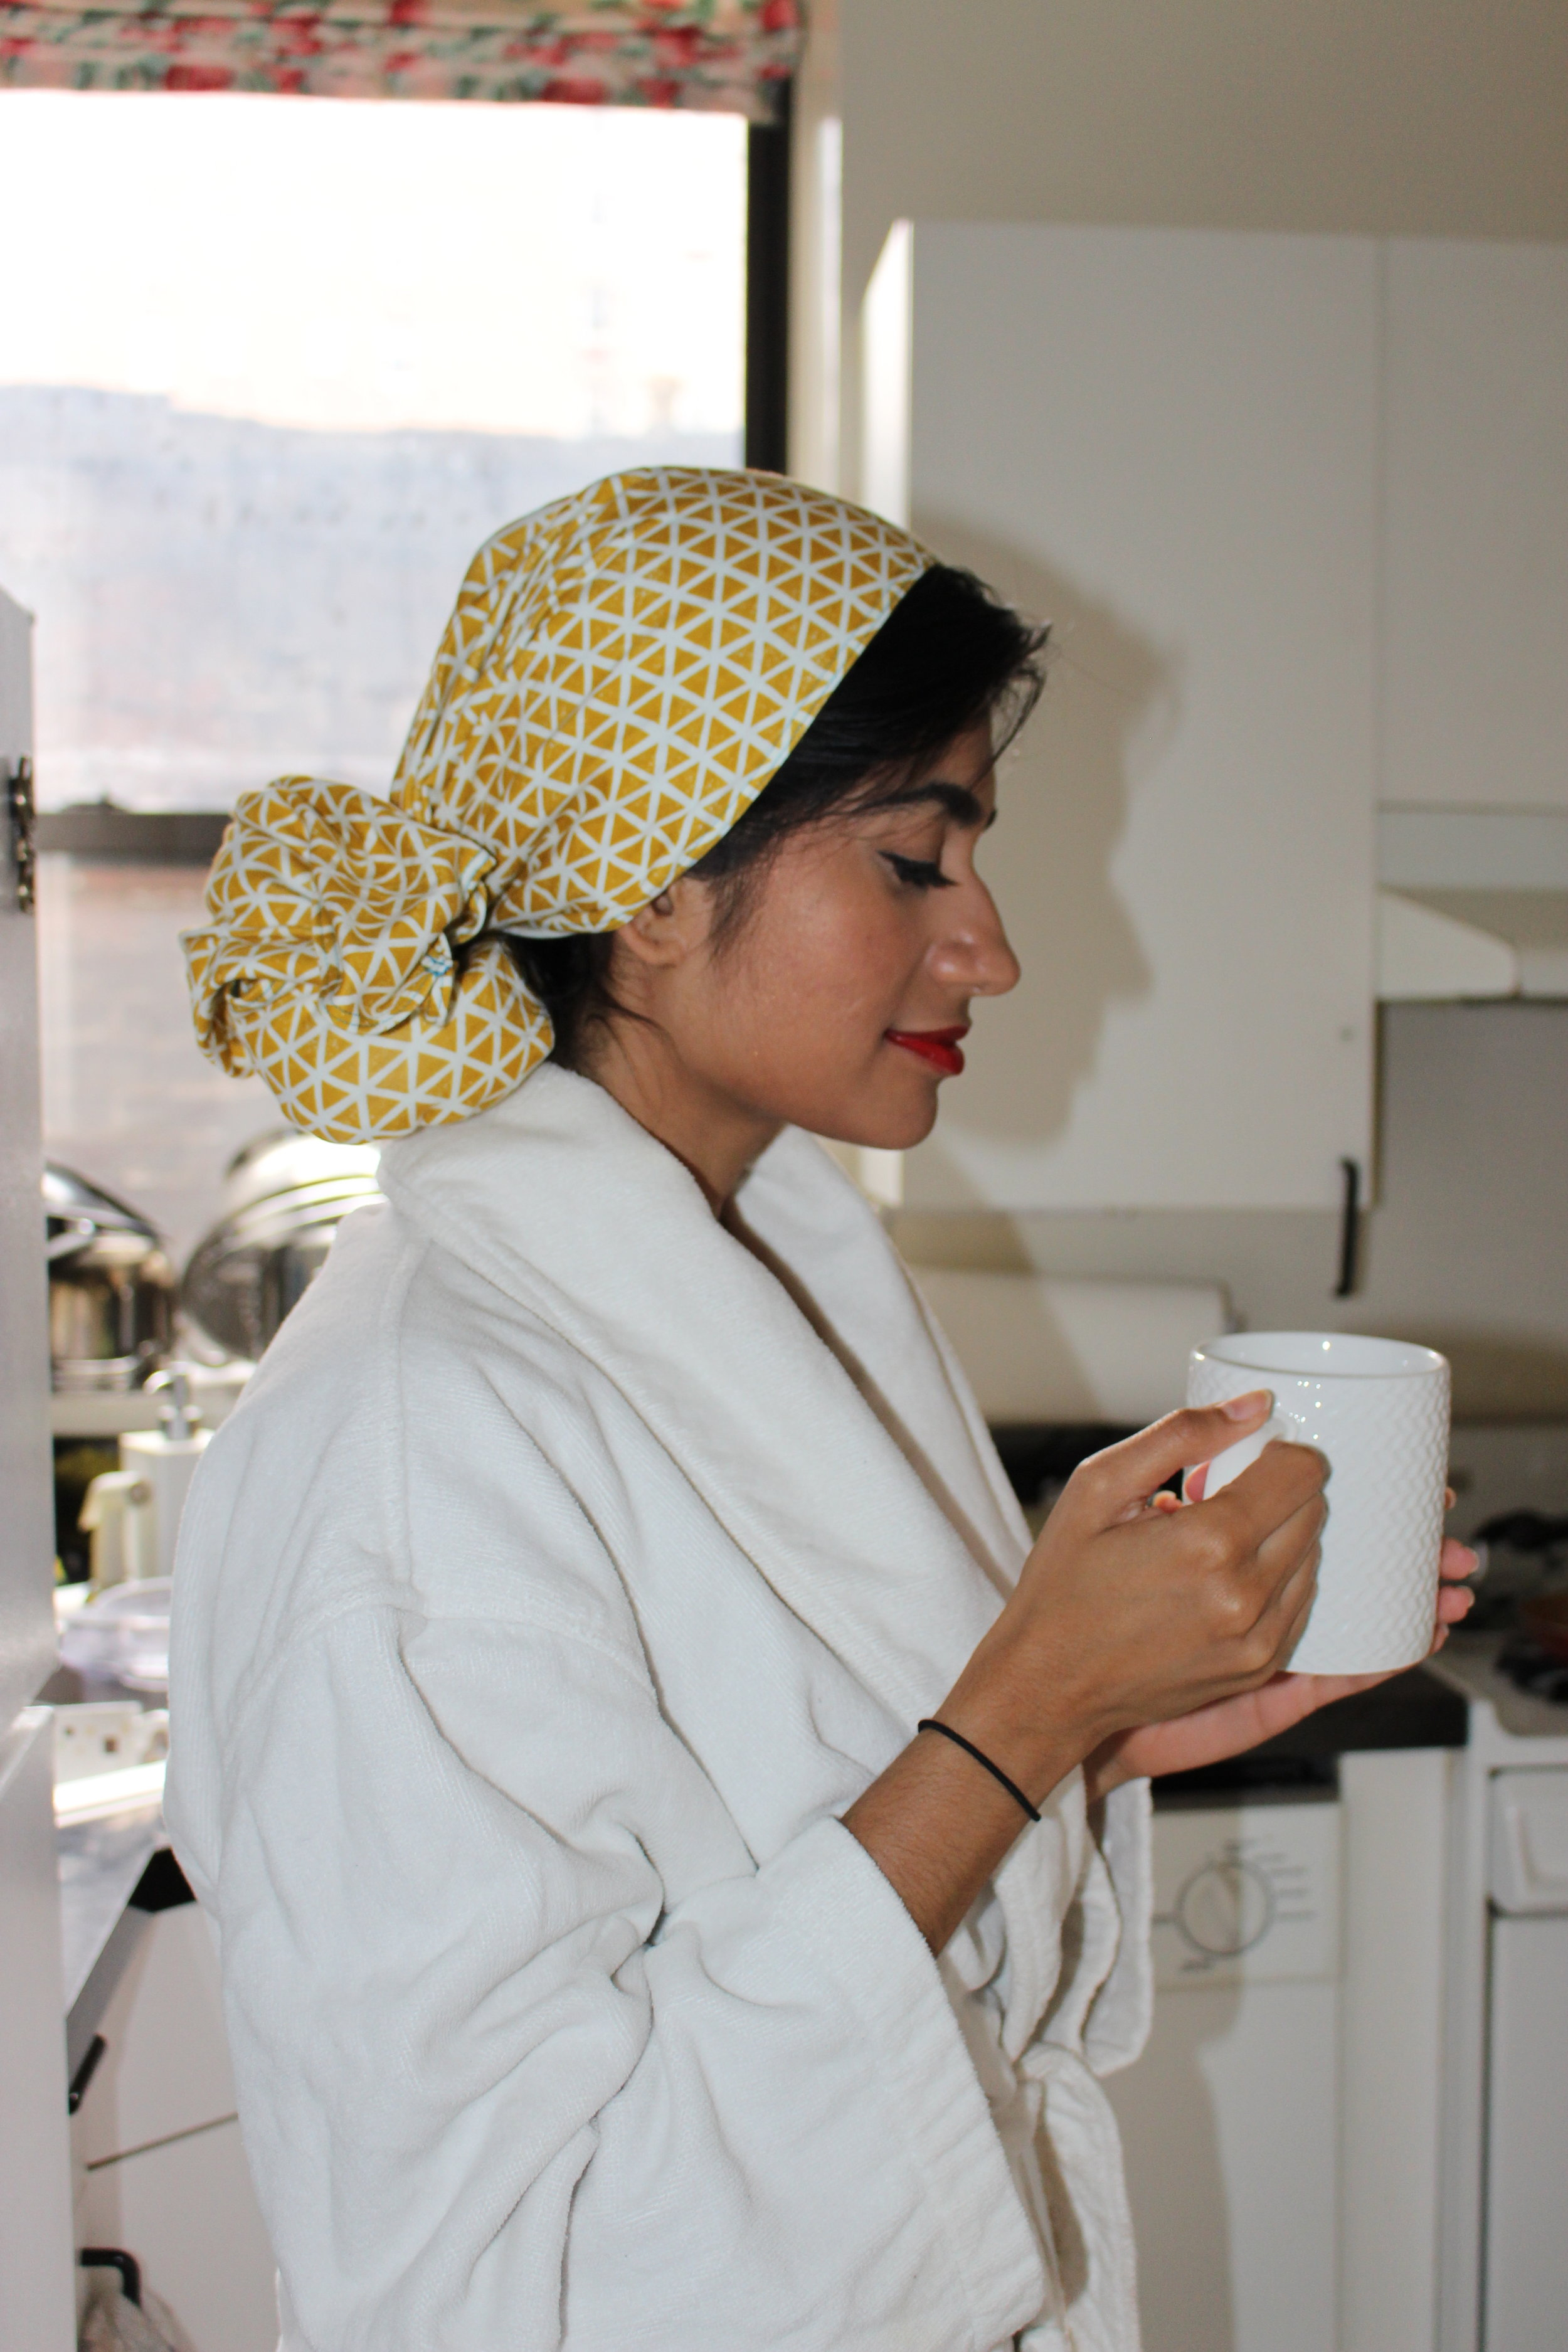 A moment of zen in my busy morning kitchen thanks to this ultra-soft Lakeshore Dry Goods towel.